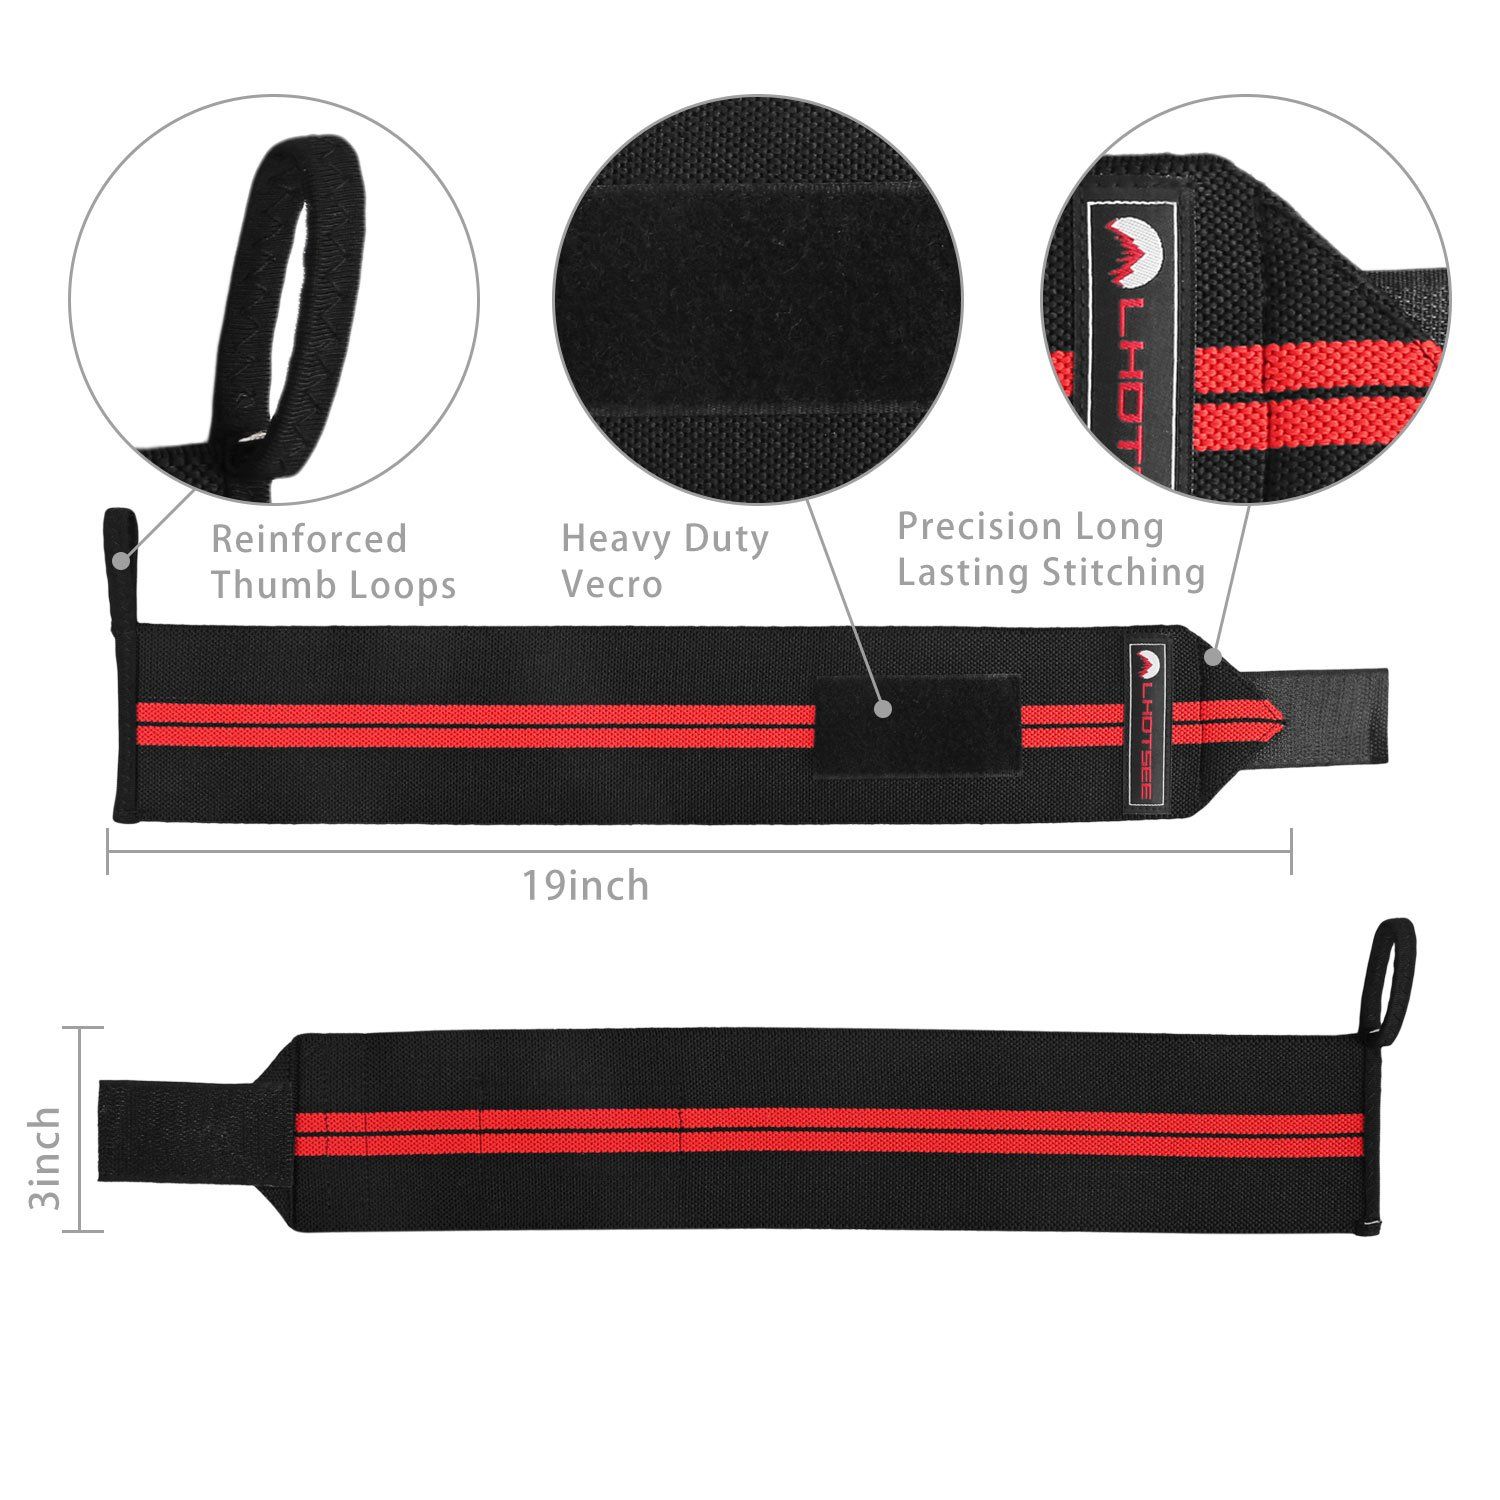 LHOTSEE Premium Wrist Straps,Professional Weight Lifting Training Wrist Straps Support Braces Wraps For Men and Women (Red) by LHOTSEE (Image #6)